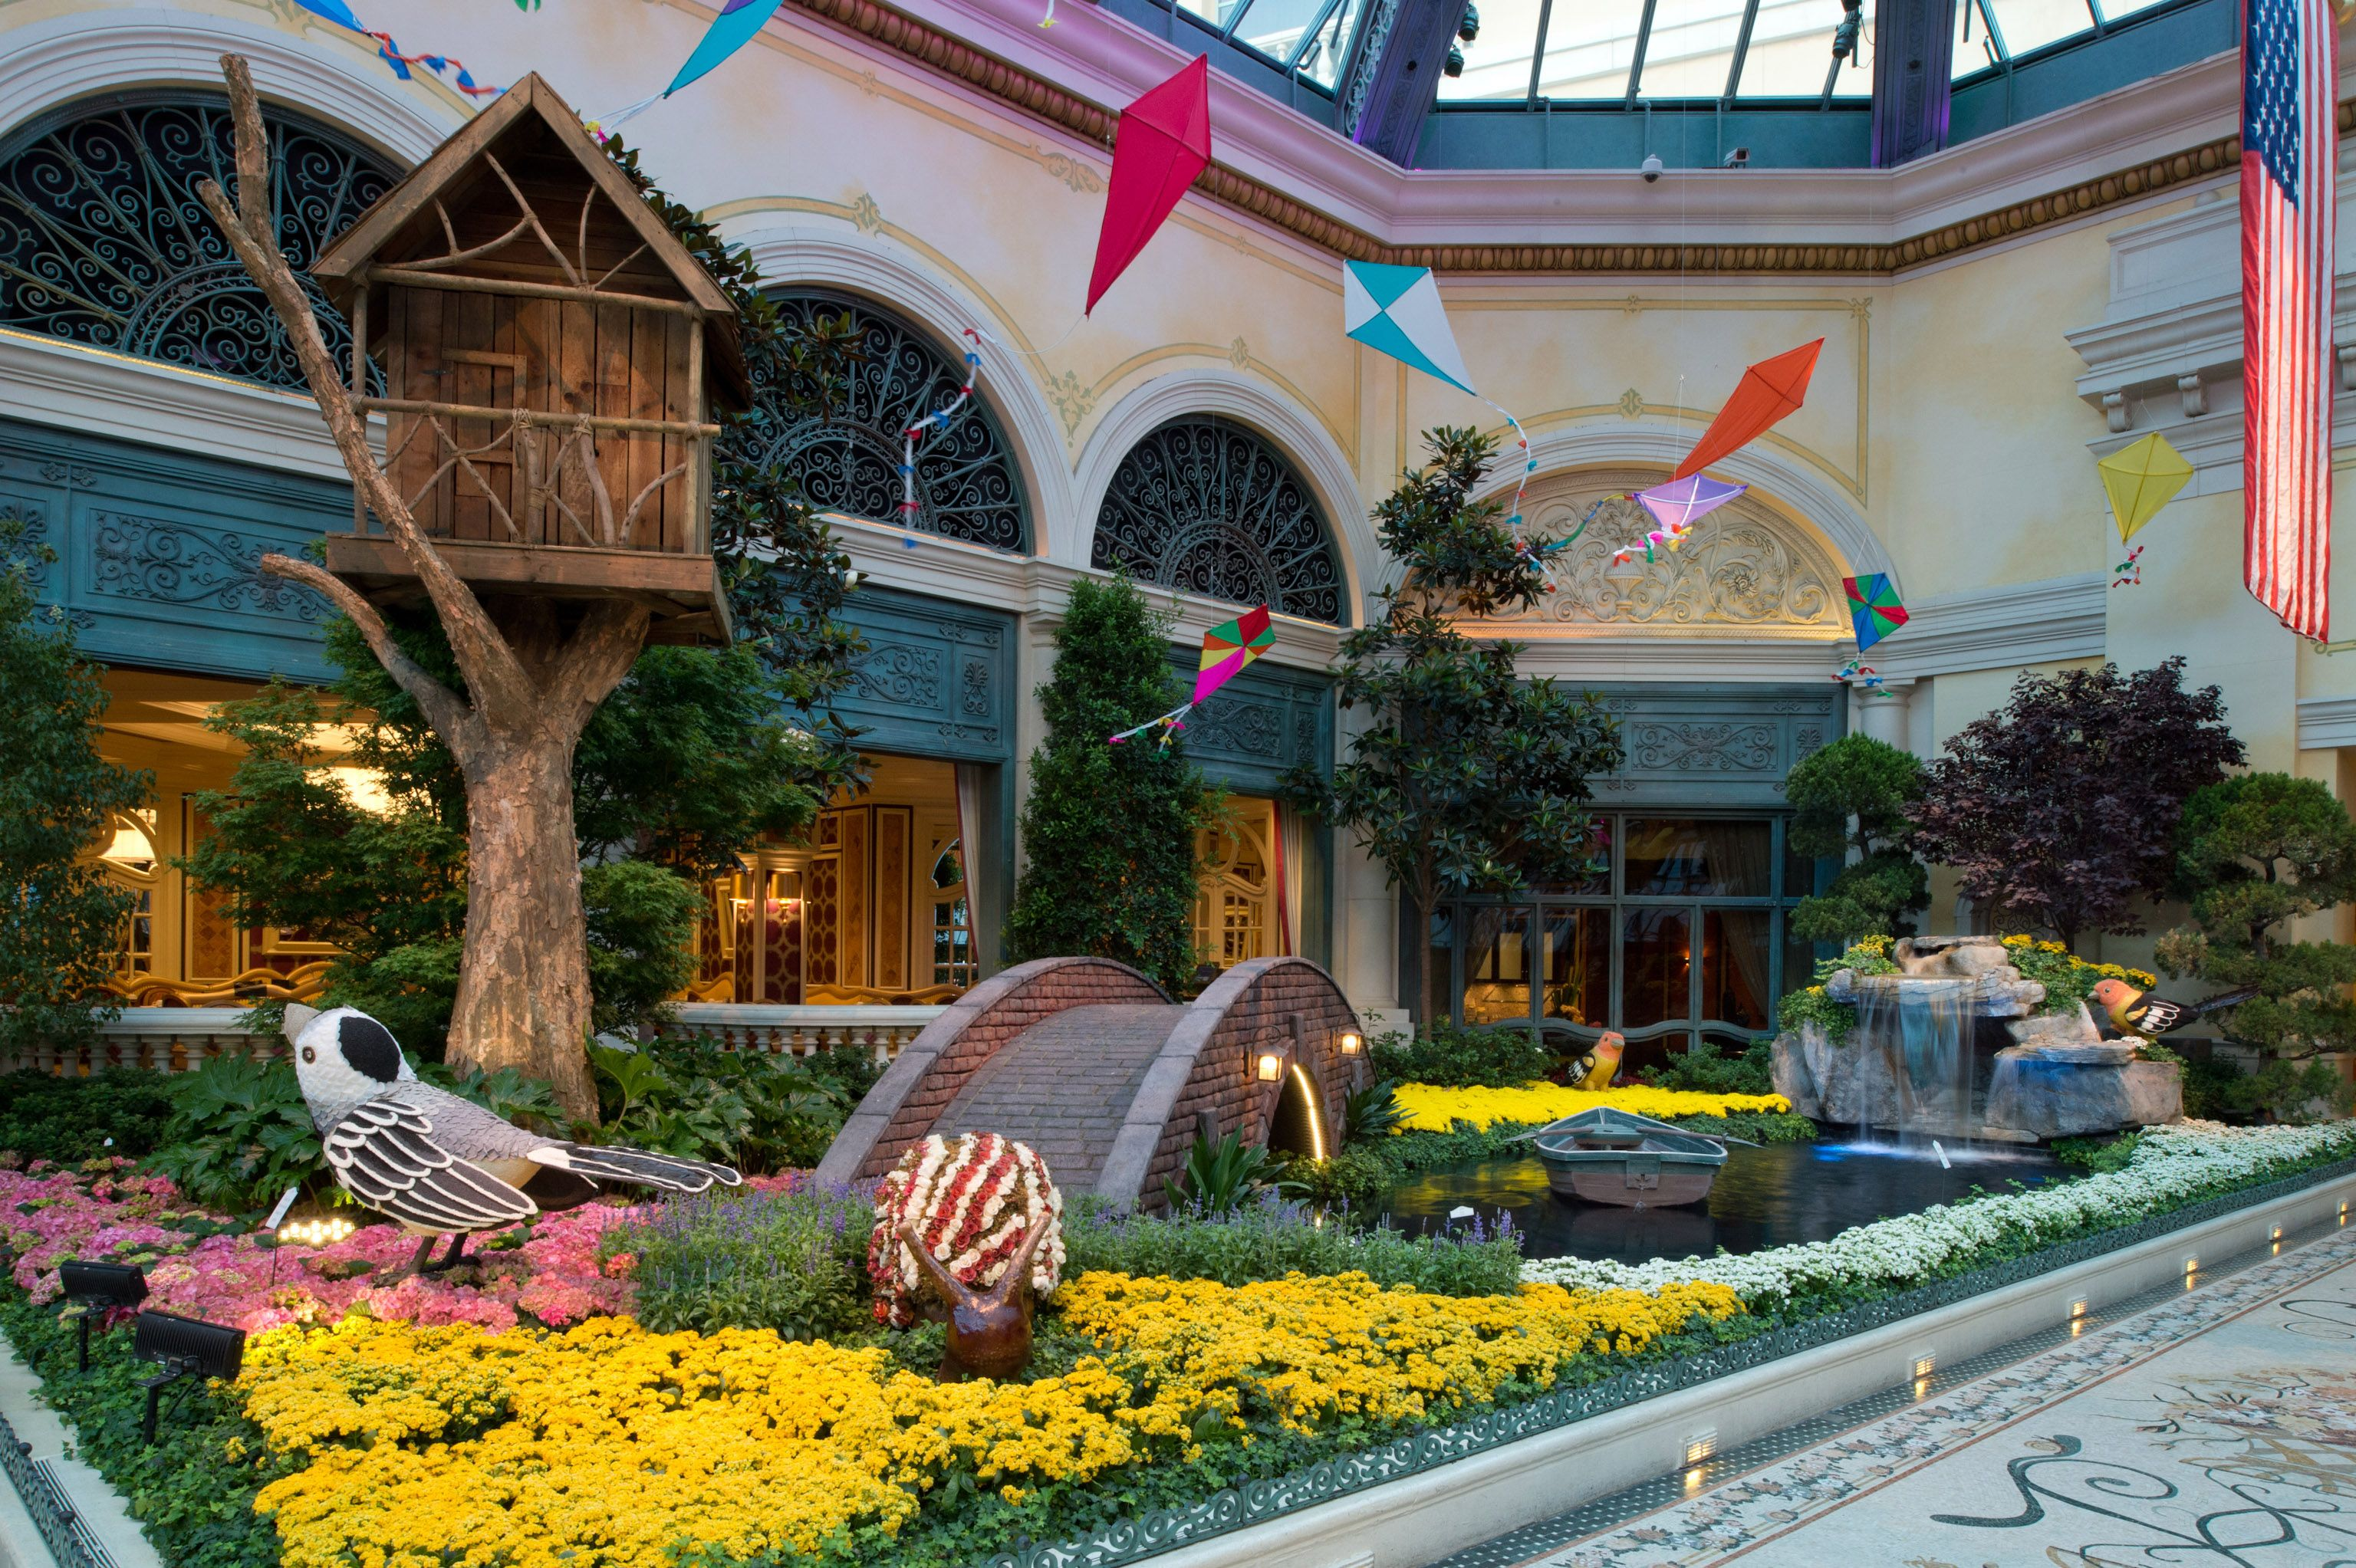 Merveilleux Explore Bellagio Conservatory, Botanical Gardens, And More!